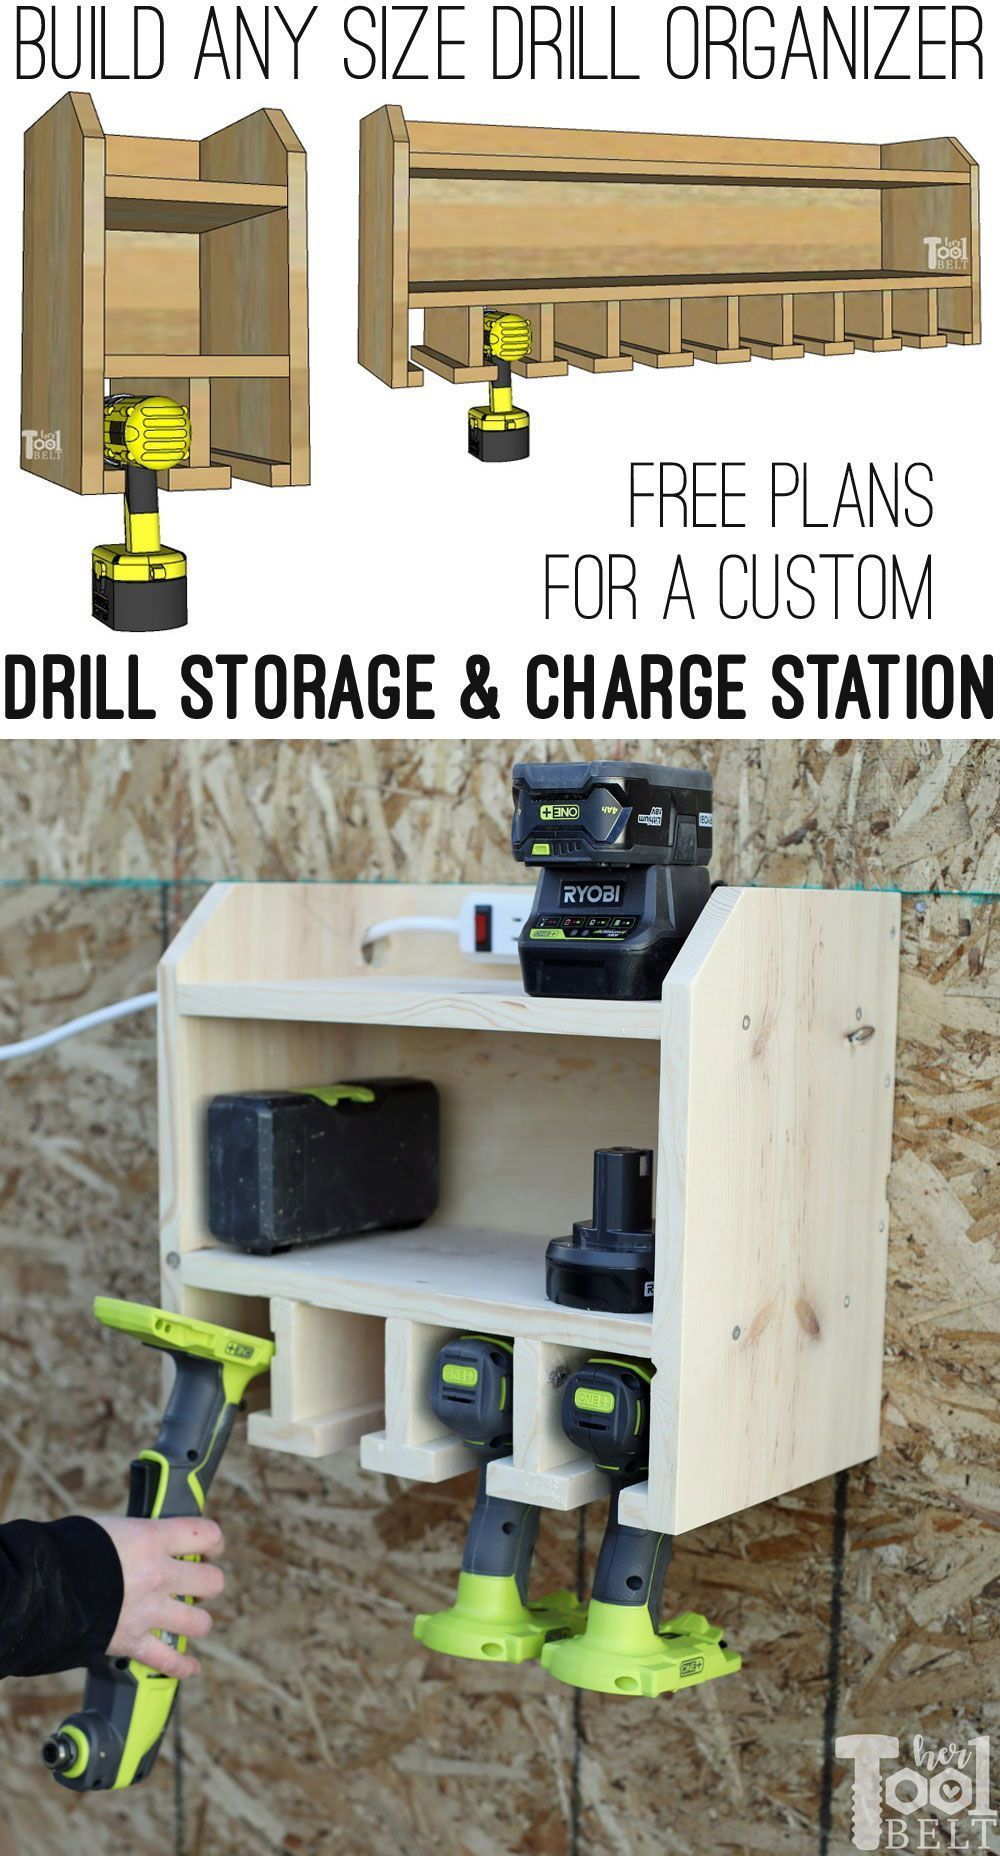 Easy Custom Drill Storage & Charge Station,  #Charge #Custom #Drill #Easy #Station #Storage #...#charge #custom #drill #easy #station #storage